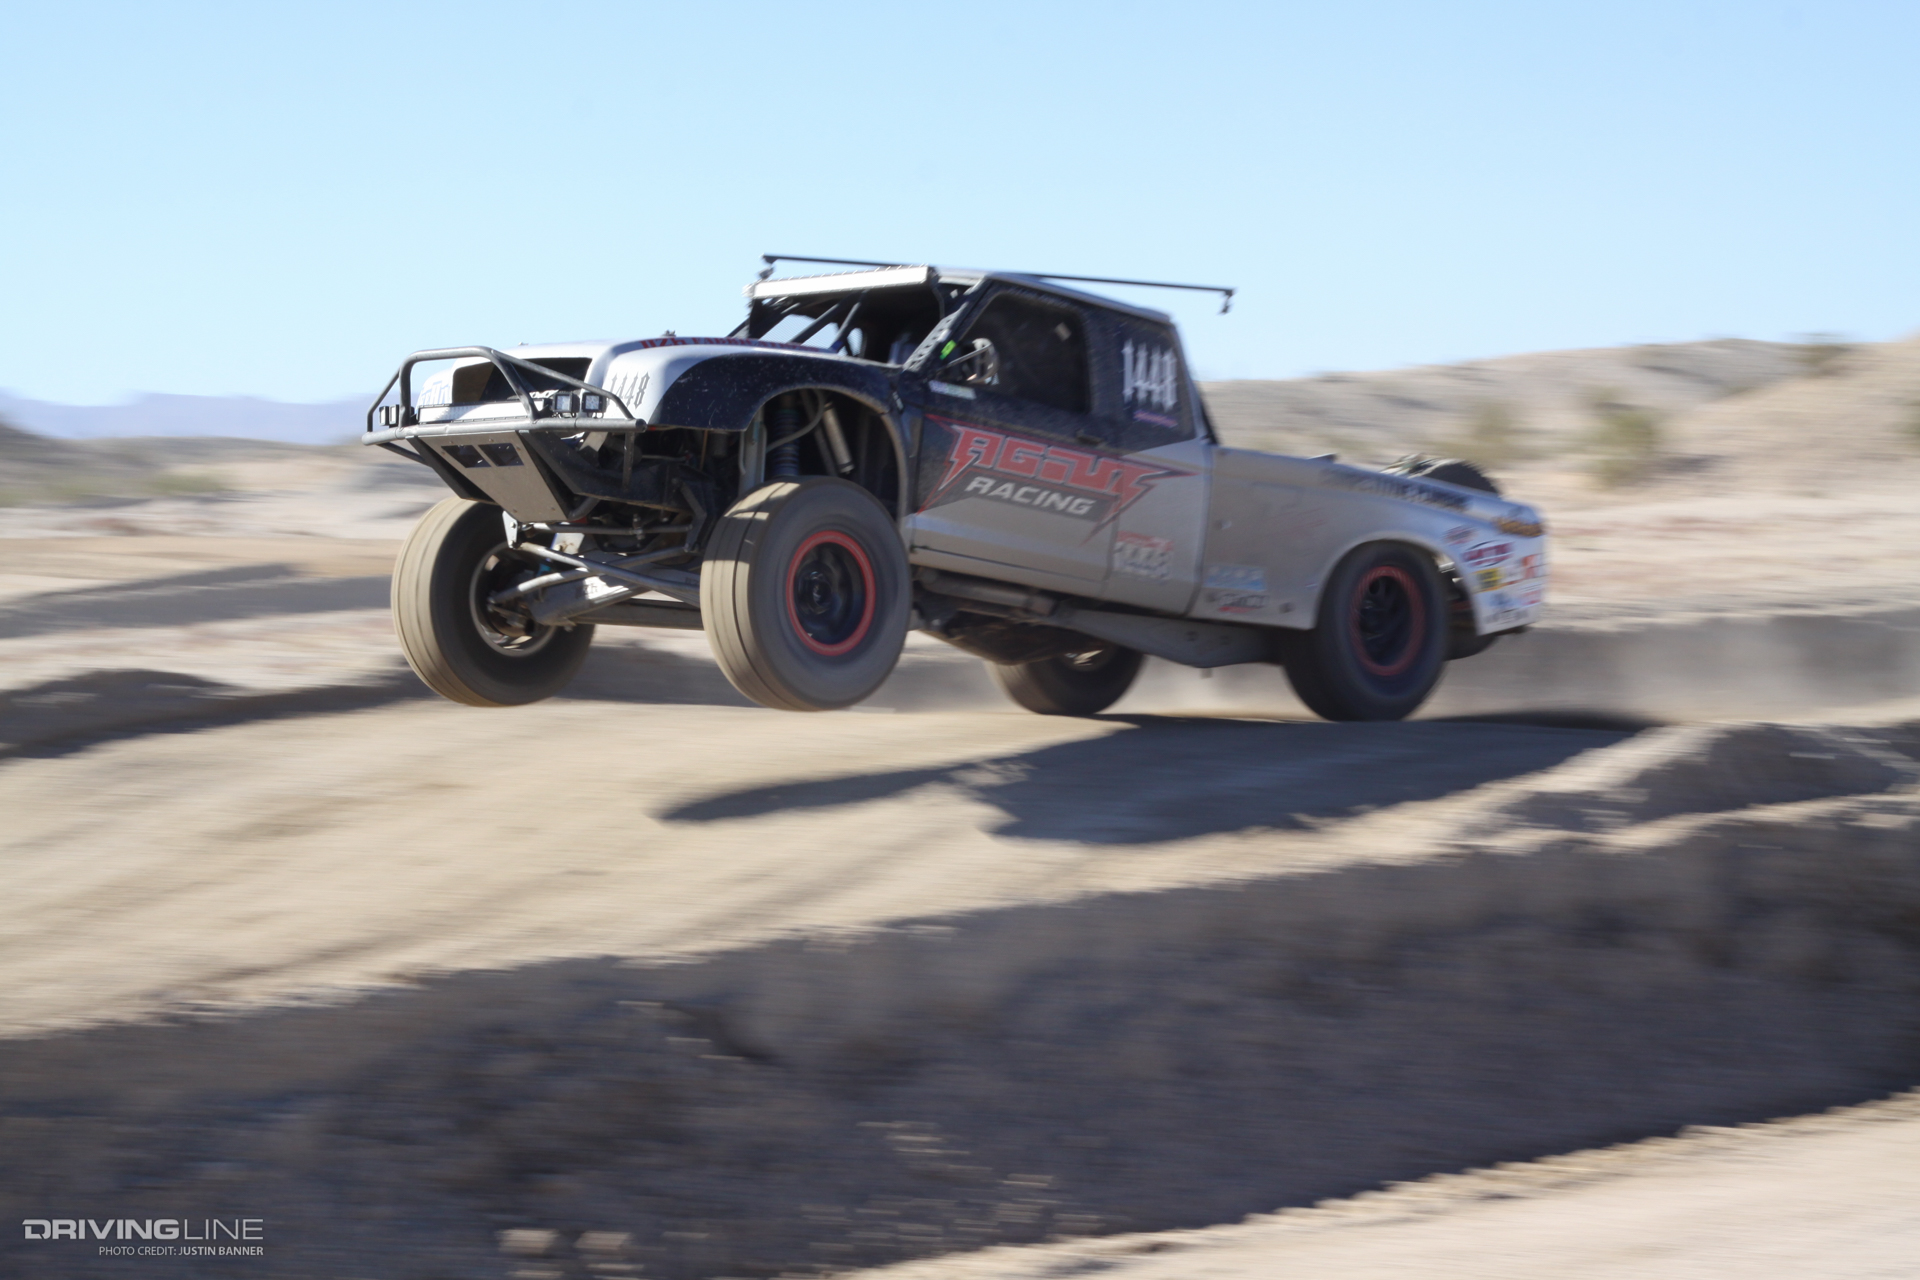 Suspension Theory With King Shocks | DrivingLine